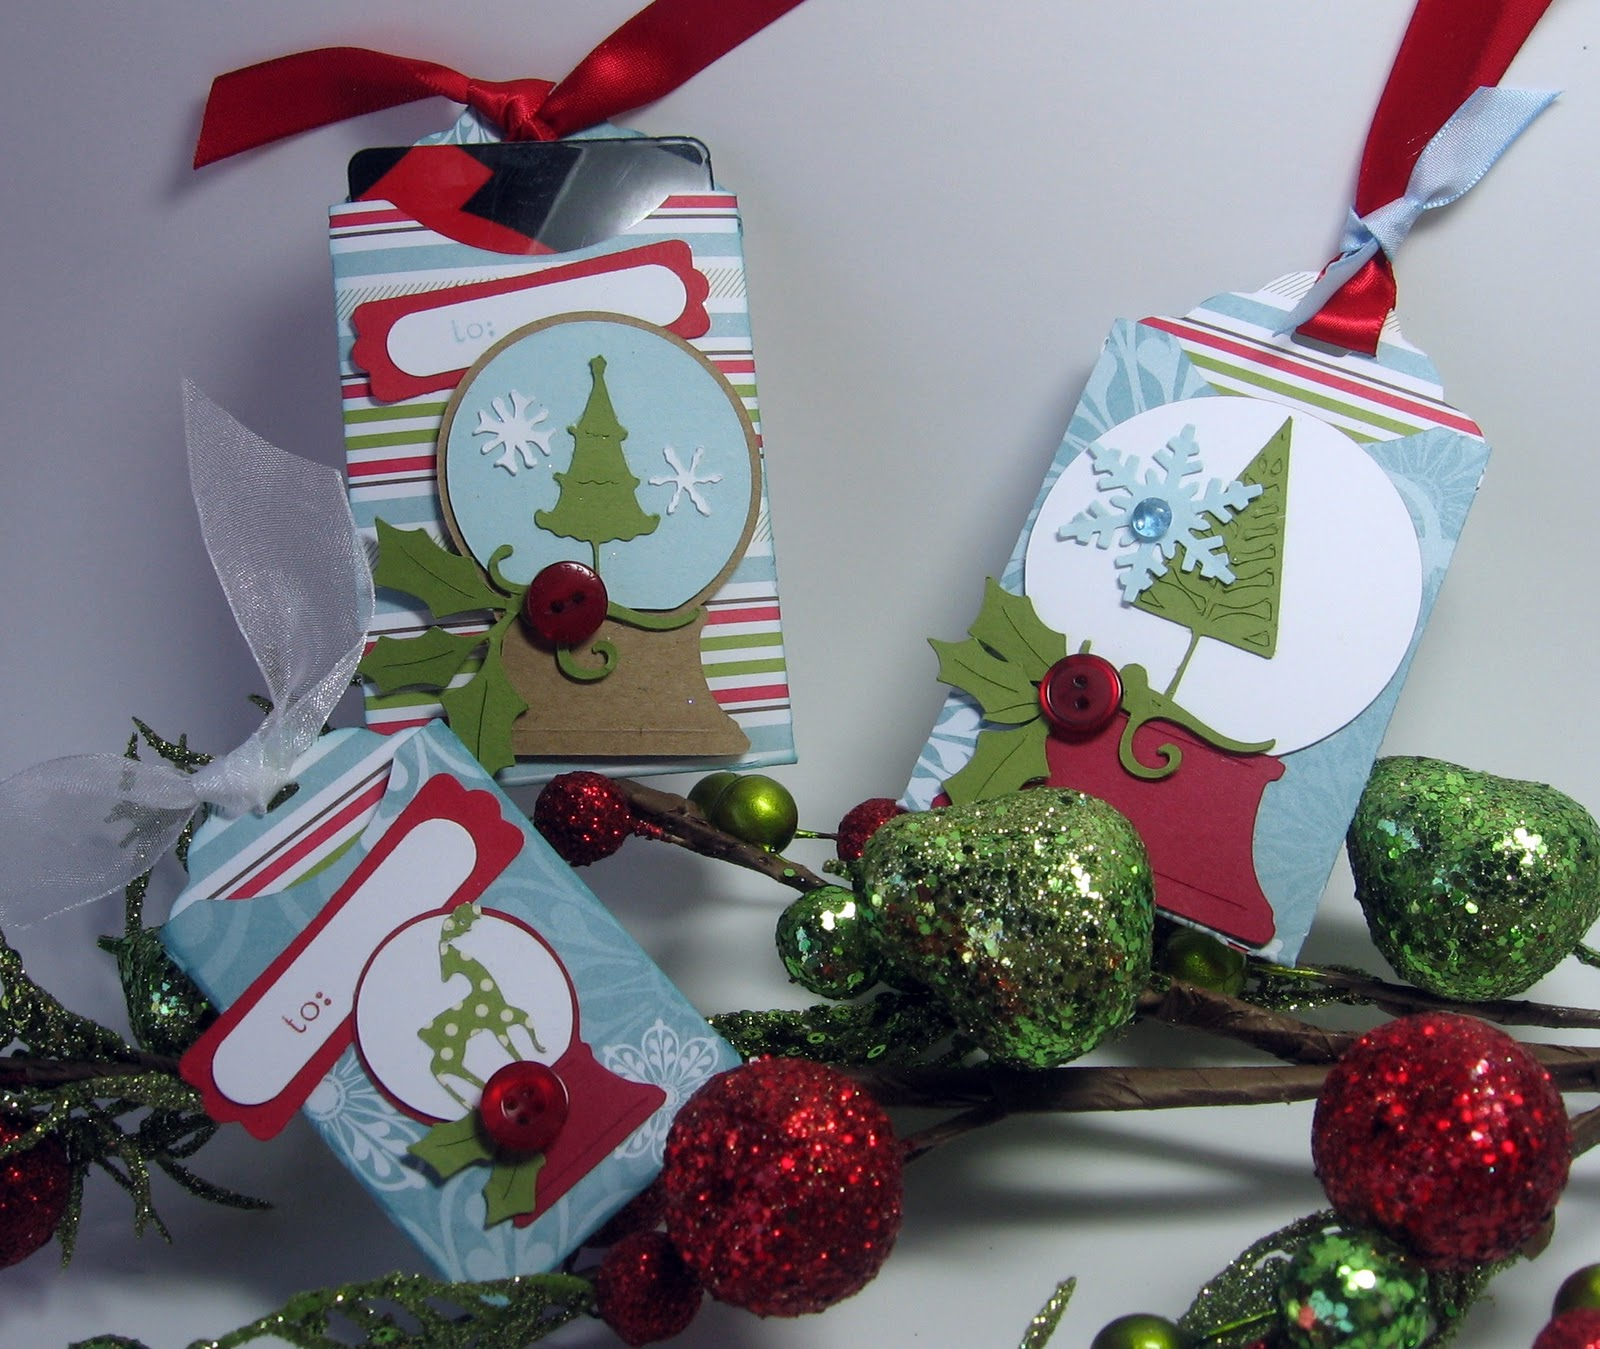 stamping up north with laurie: Cricut Christmas gift cards